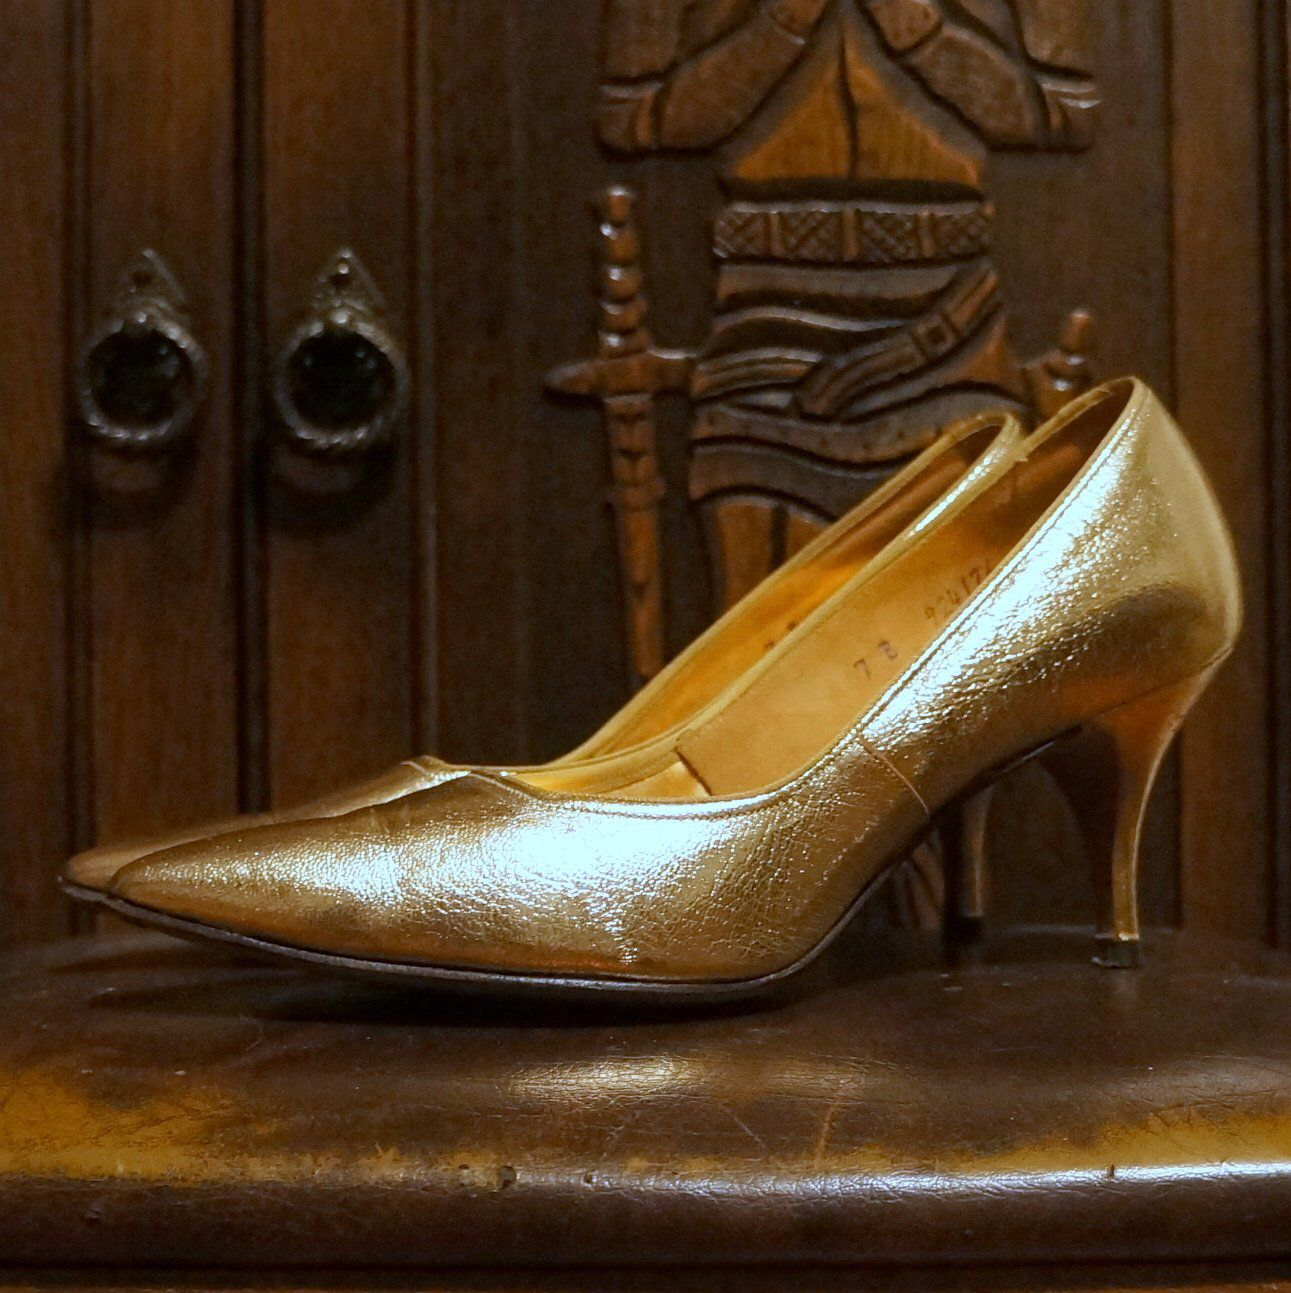 1950s 1960s Gold Heels Vintage Shoes 7 B Narrow Leather Pointed Toe Mid Heel Pumps 3 Inch Stilettos 50 S Kitten Heels Fair Deb Shepard Gold Heels Heels Vintage Shoes